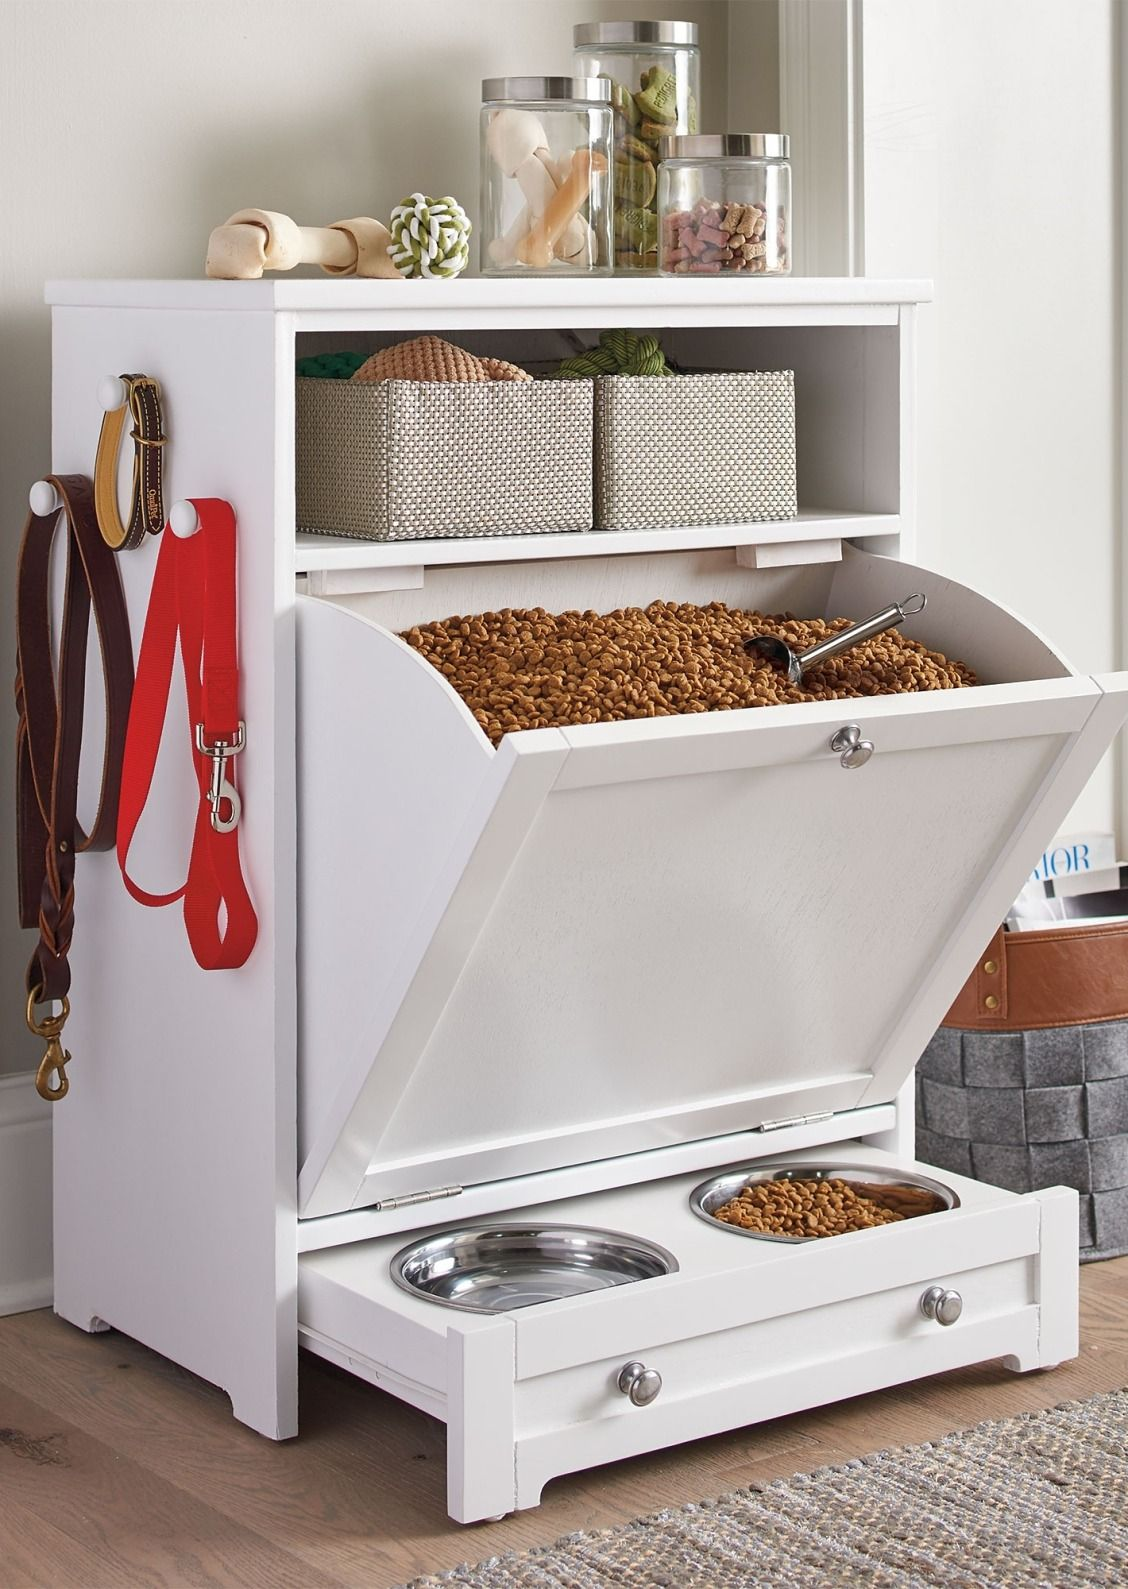 Enjoy The Convenience Of Food Leash And Toy Storage Plus A Feeding Station All In One Stylish Compact Space With Our Pet Home Diy Pet Feeder Station Home